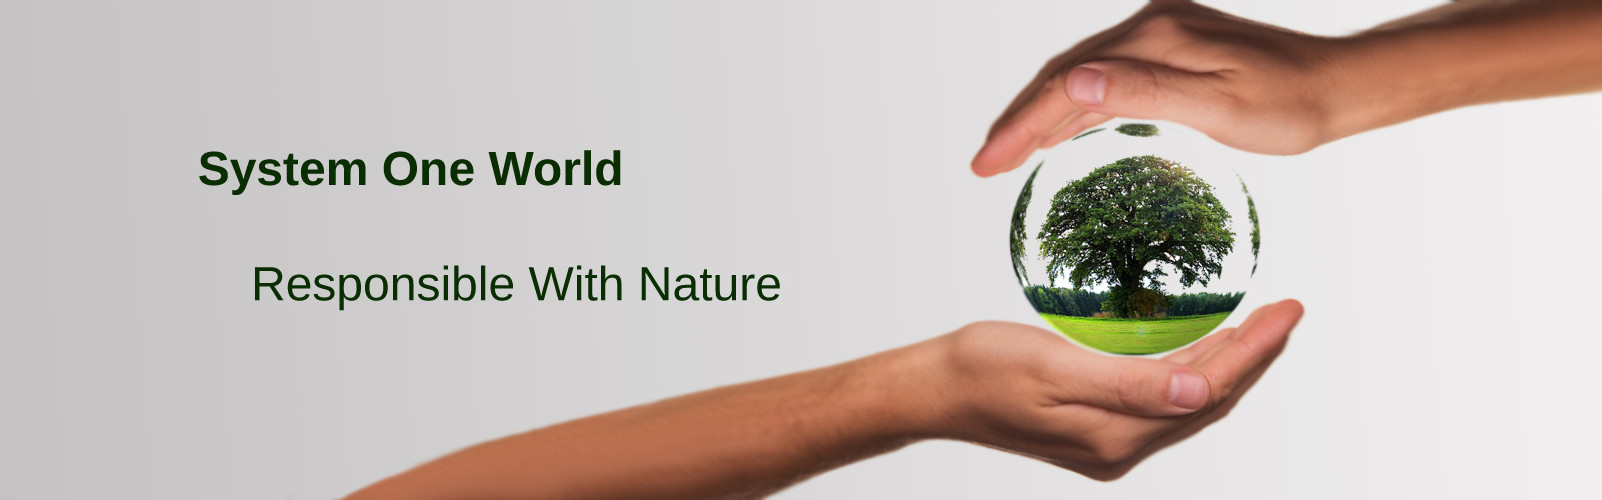 System One World responsible with nature